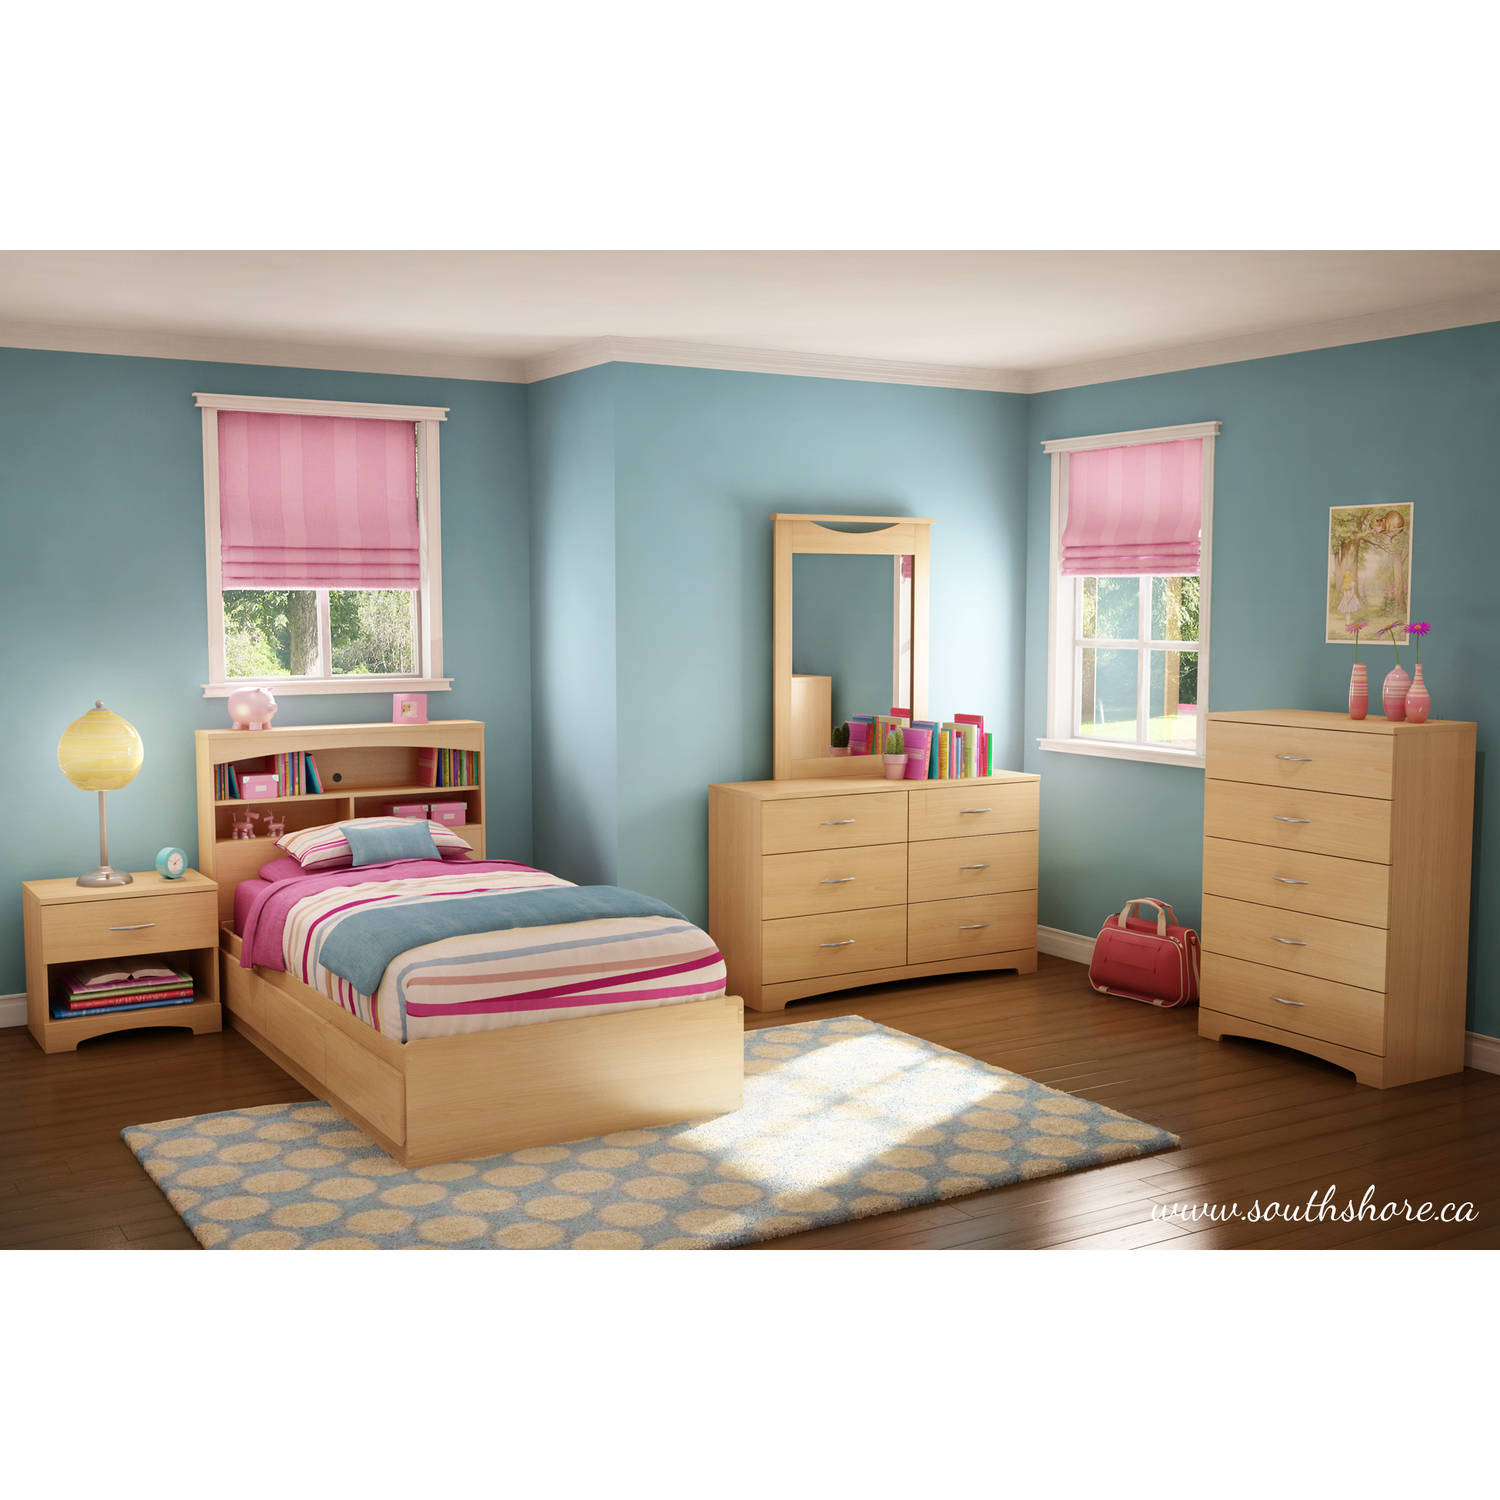 Montana Bedroom Furniture Collection. Montana furniture